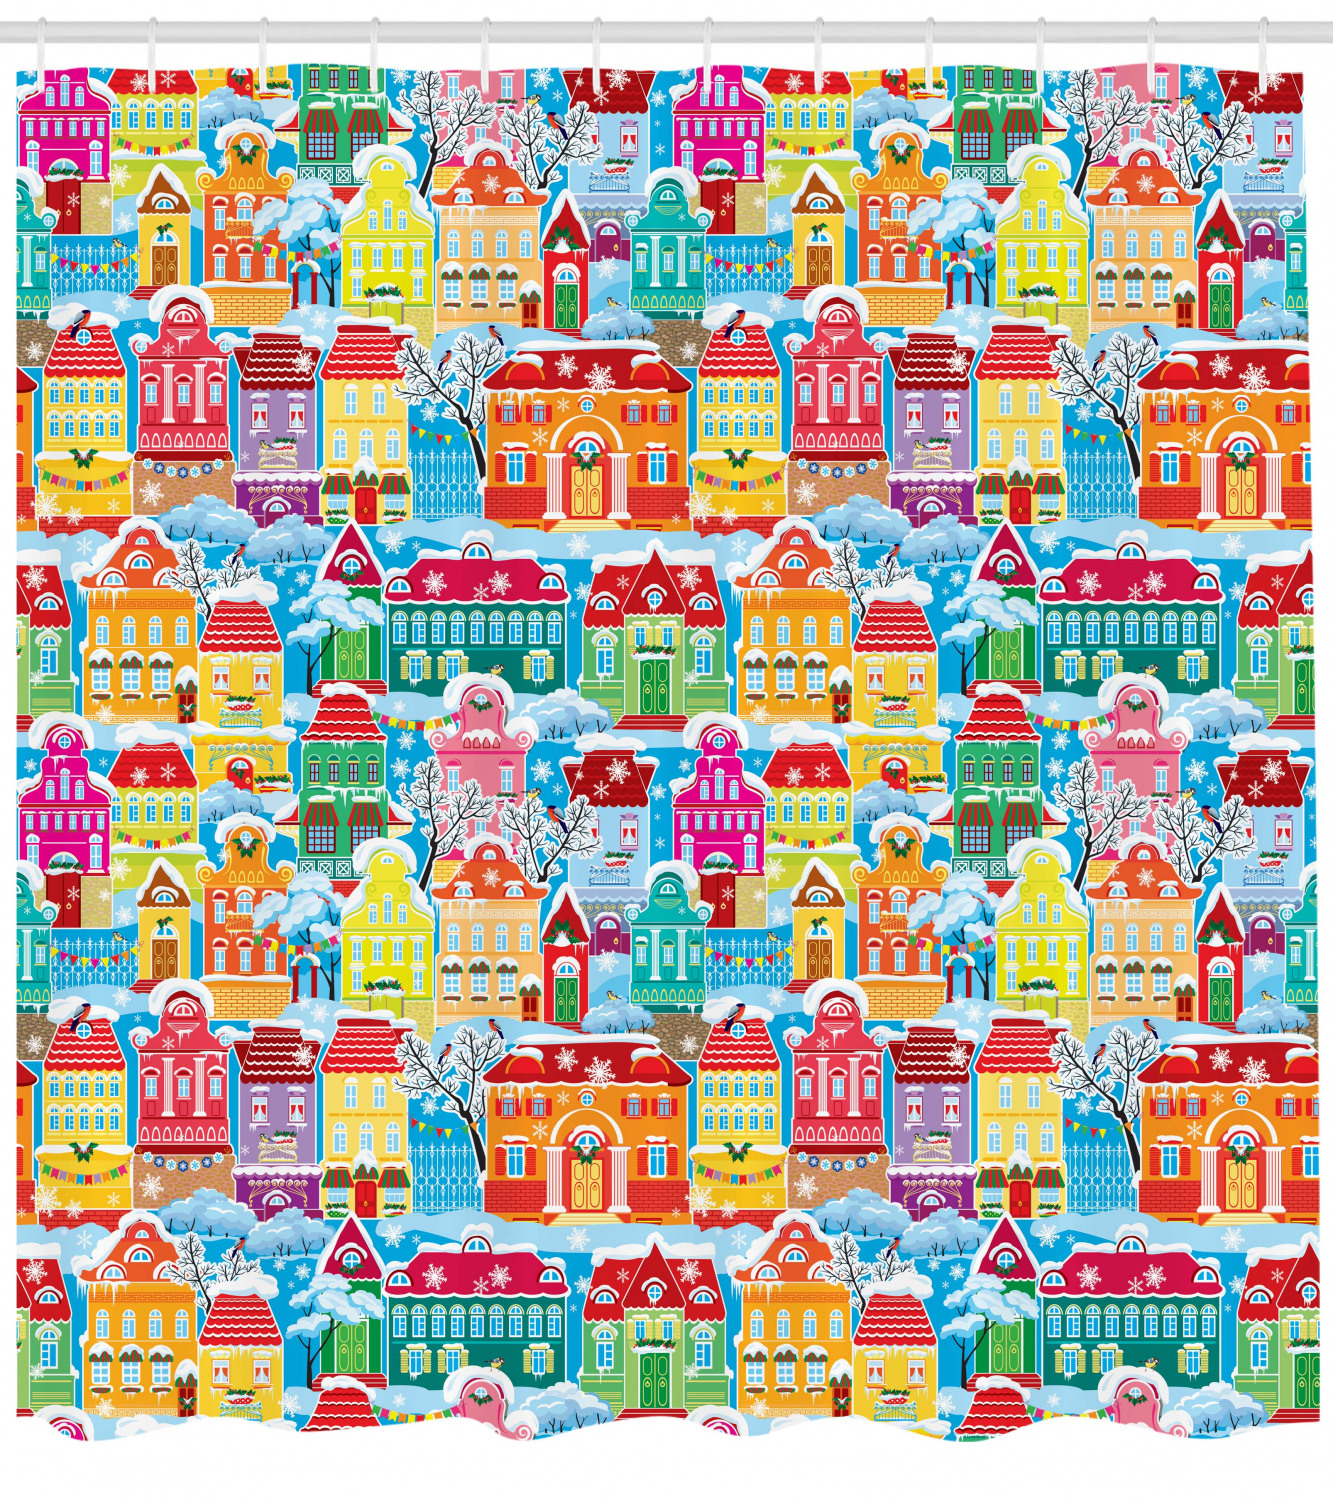 Rider Pattern Shower Curtain Fabric Decor Set with Hooks 4 Sizes Ambesonne